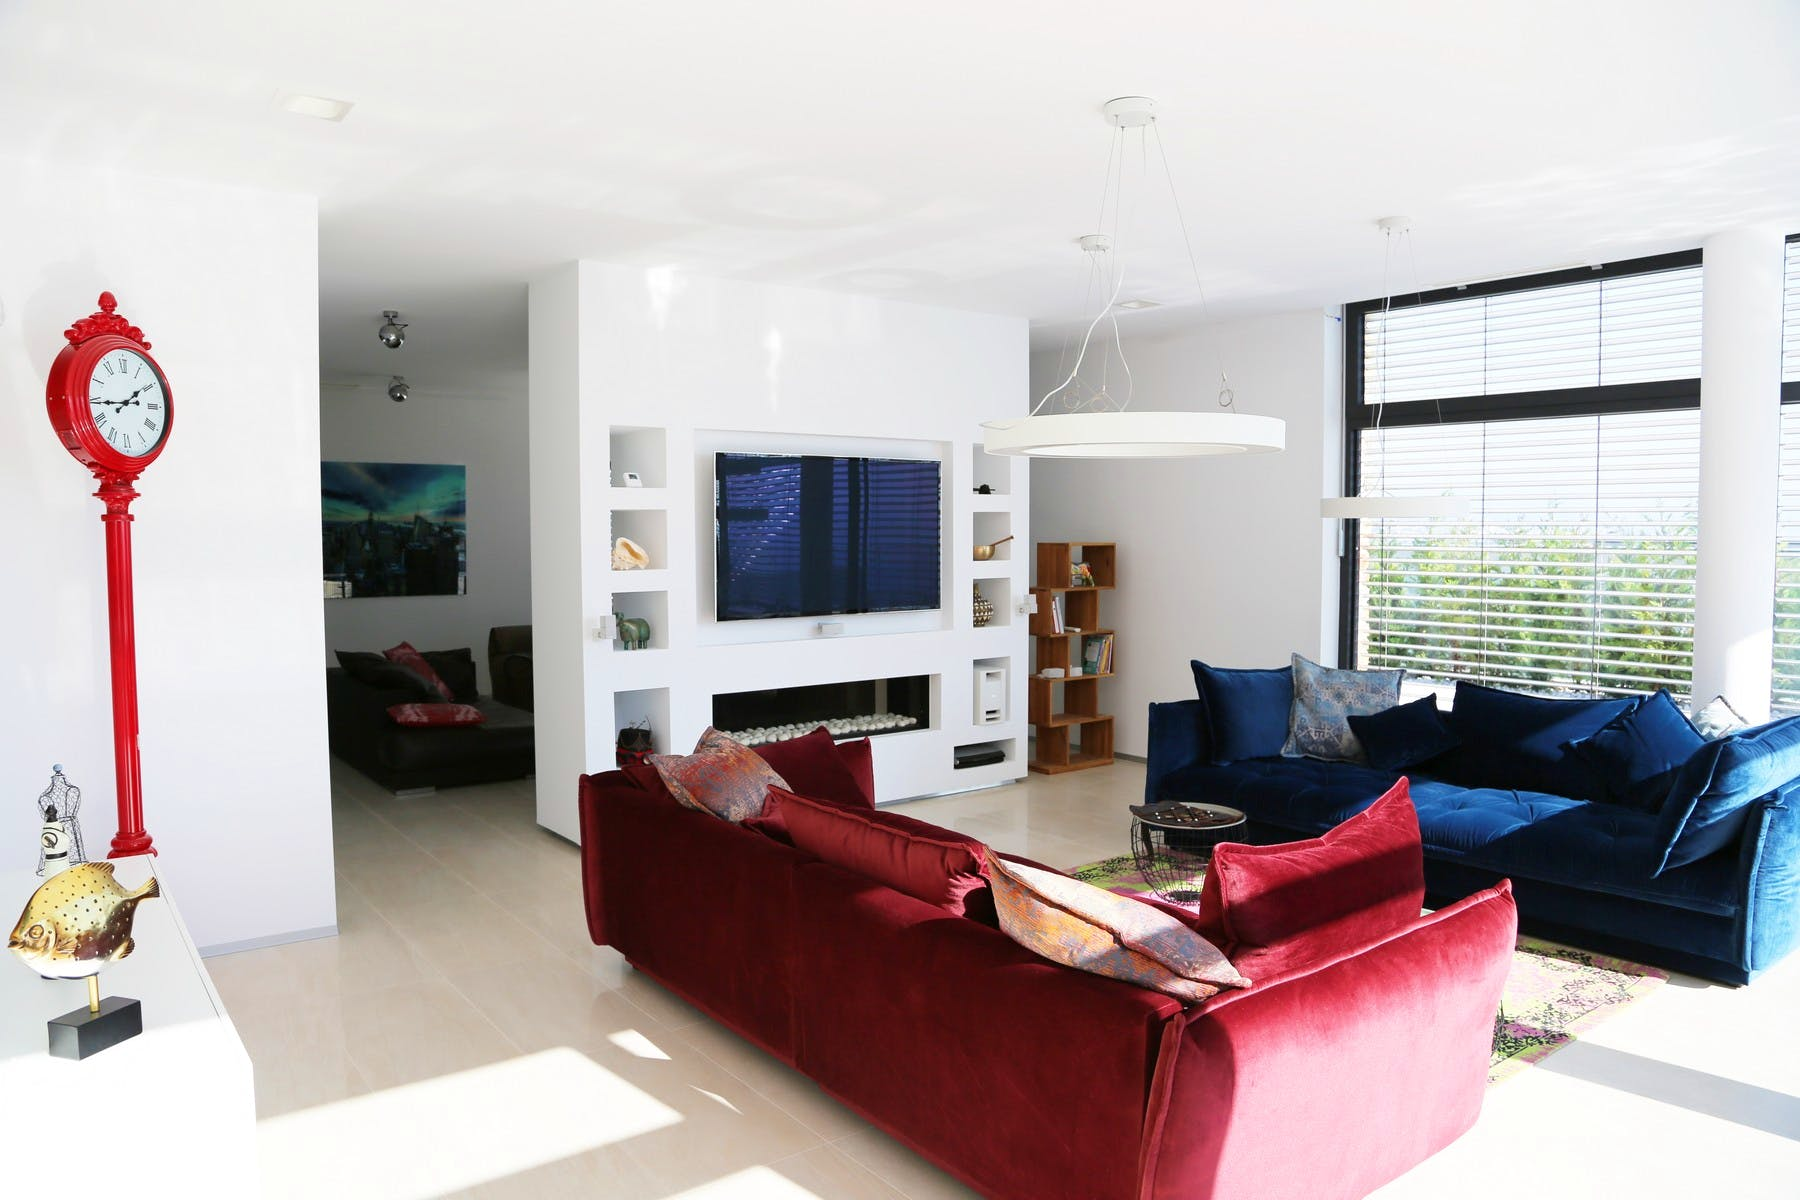 Sitting area with a TV